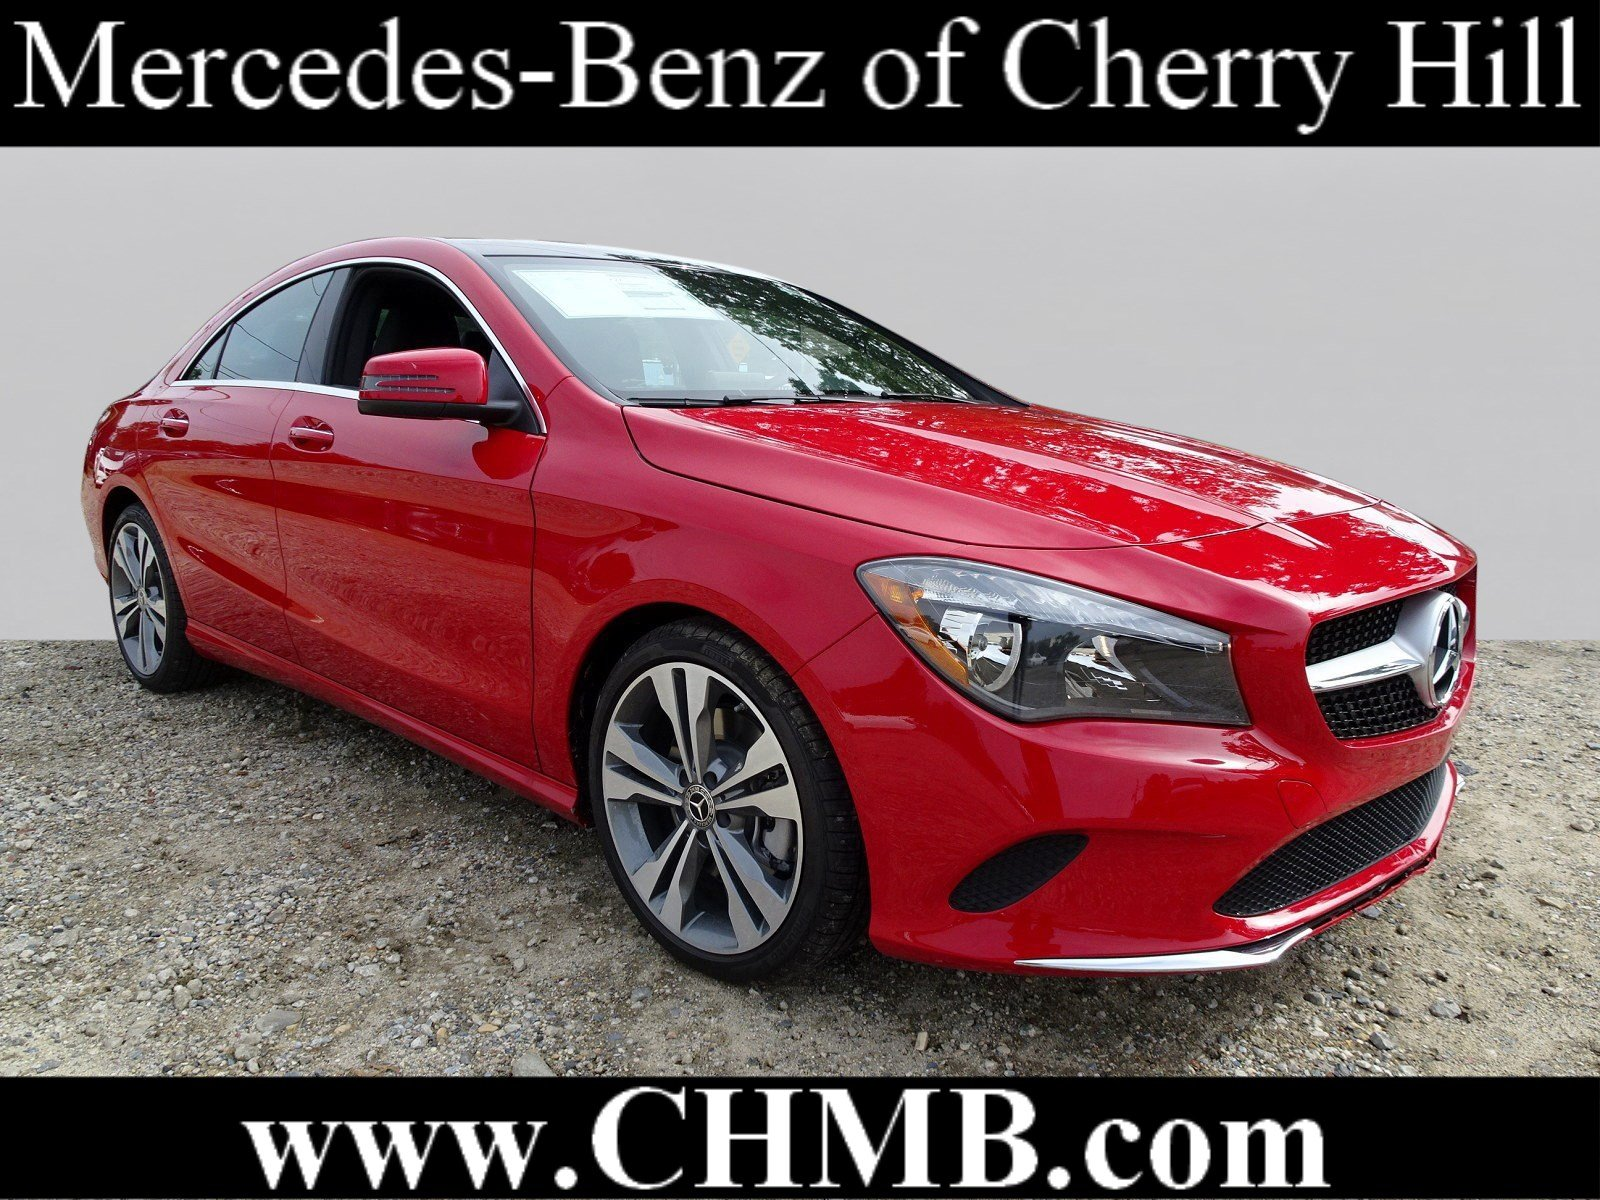 new 2019 mercedes benz cla cla 250 coupe in cherry hill m2248 mercedes benz of cherry hill. Black Bedroom Furniture Sets. Home Design Ideas